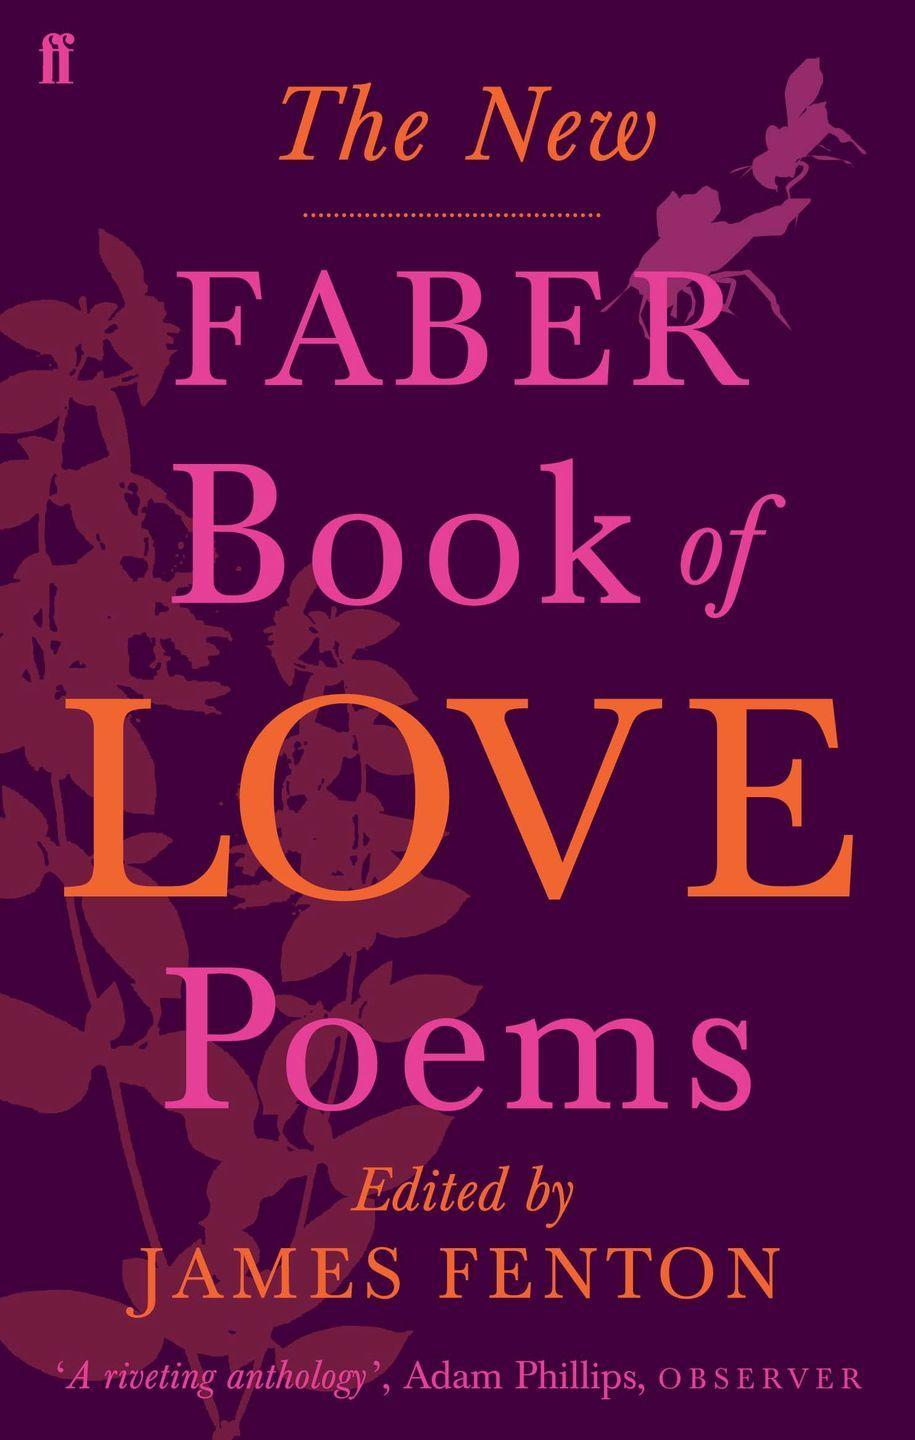 "<p>Read your loved one billets doux through the ages, from the 16th century to the present day, combining classic and modern lines, as well as blues lyrics, American folk poetry and Elizabethan verses.'</p><p>The New Faber Book of Love Poems' (£12.99, Faber & Faber)</p><p><a class=""link rapid-noclick-resp"" href=""https://www.amazon.co.uk/New-Faber-Book-Love-Poems/dp/0571218156/ref=mp_s_a_1_1?adgrpid=92790661641&dchild=1&gclid=EAIaIQobChMIhNLW4P2u7gIVSrTtCh2Cug7vEAAYASAAEgL_h_D_BwE&hvadid=411028190068&hvdev=m&hvlocphy=1006681&hvnetw=g&hvqmt=e&hvrand=3445949166139963522&hvtargid=kwd-312137606349&hydadcr=27963_1823155&keywords=the+new+faber+book+of+love+poems&qid=1611299331&sr=8-1&tag=hearstuk-yahoo-21&ascsubtag=%5Bartid%7C2114.g.35147769%5Bsrc%7Cyahoo-uk"" rel=""nofollow noopener"" target=""_blank"" data-ylk=""slk:SHOP NOW"">SHOP NOW</a><br></p>"